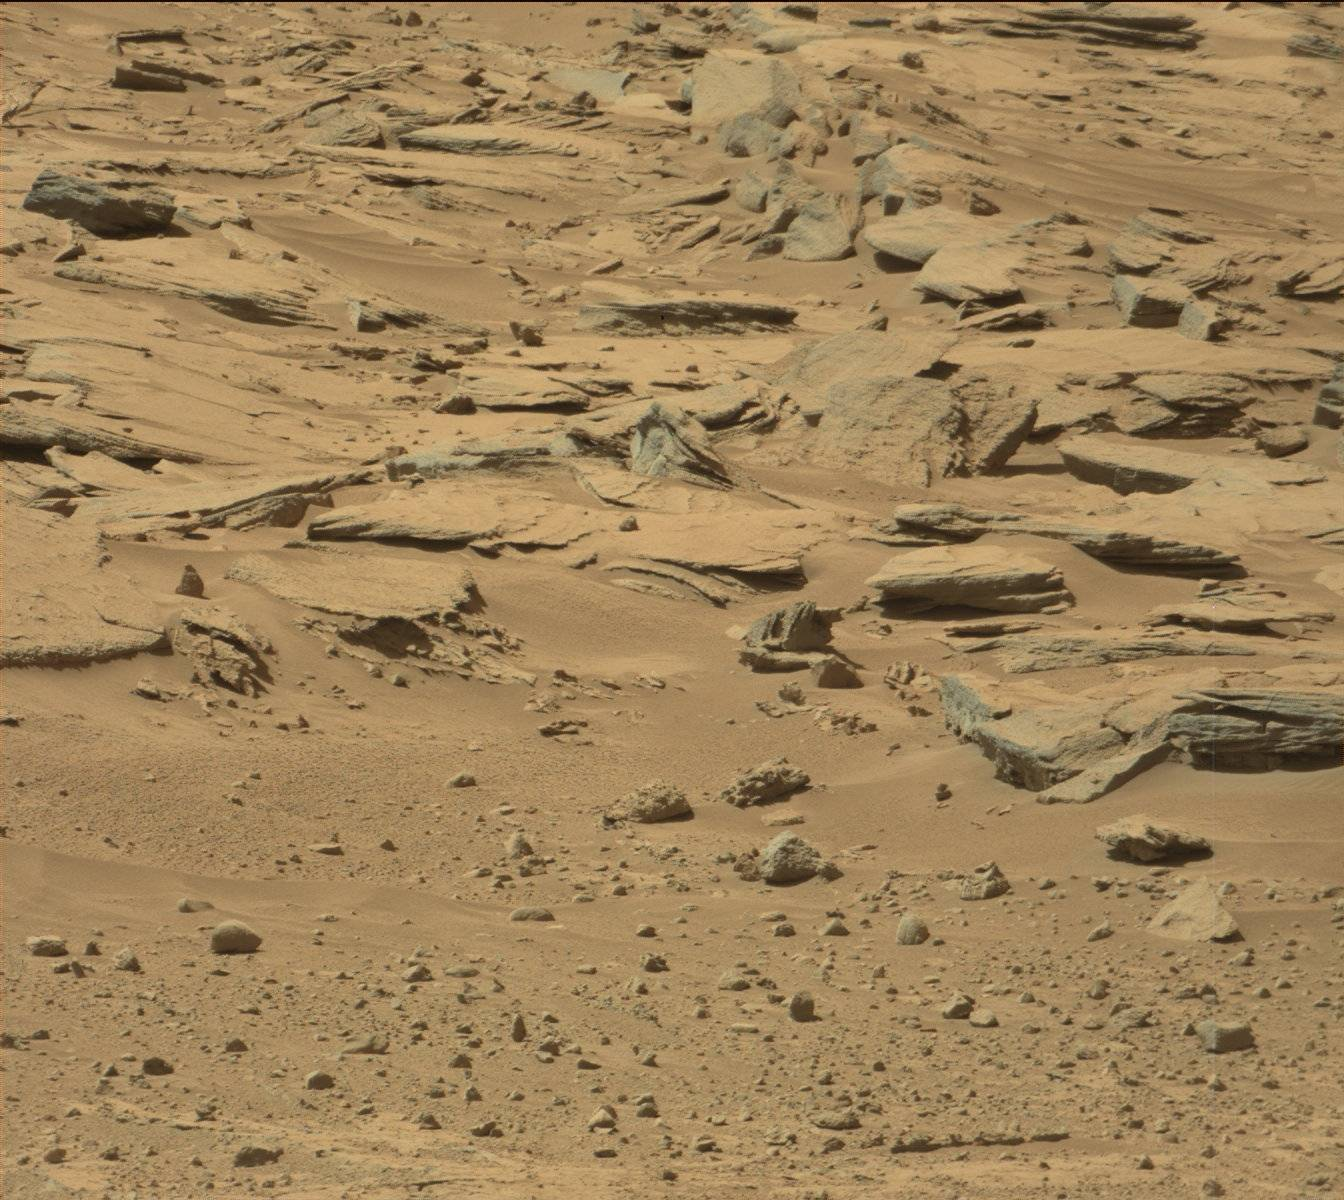 Nasa's Mars rover Curiosity acquired this image using its Mast Camera (Mastcam) on Sol 554